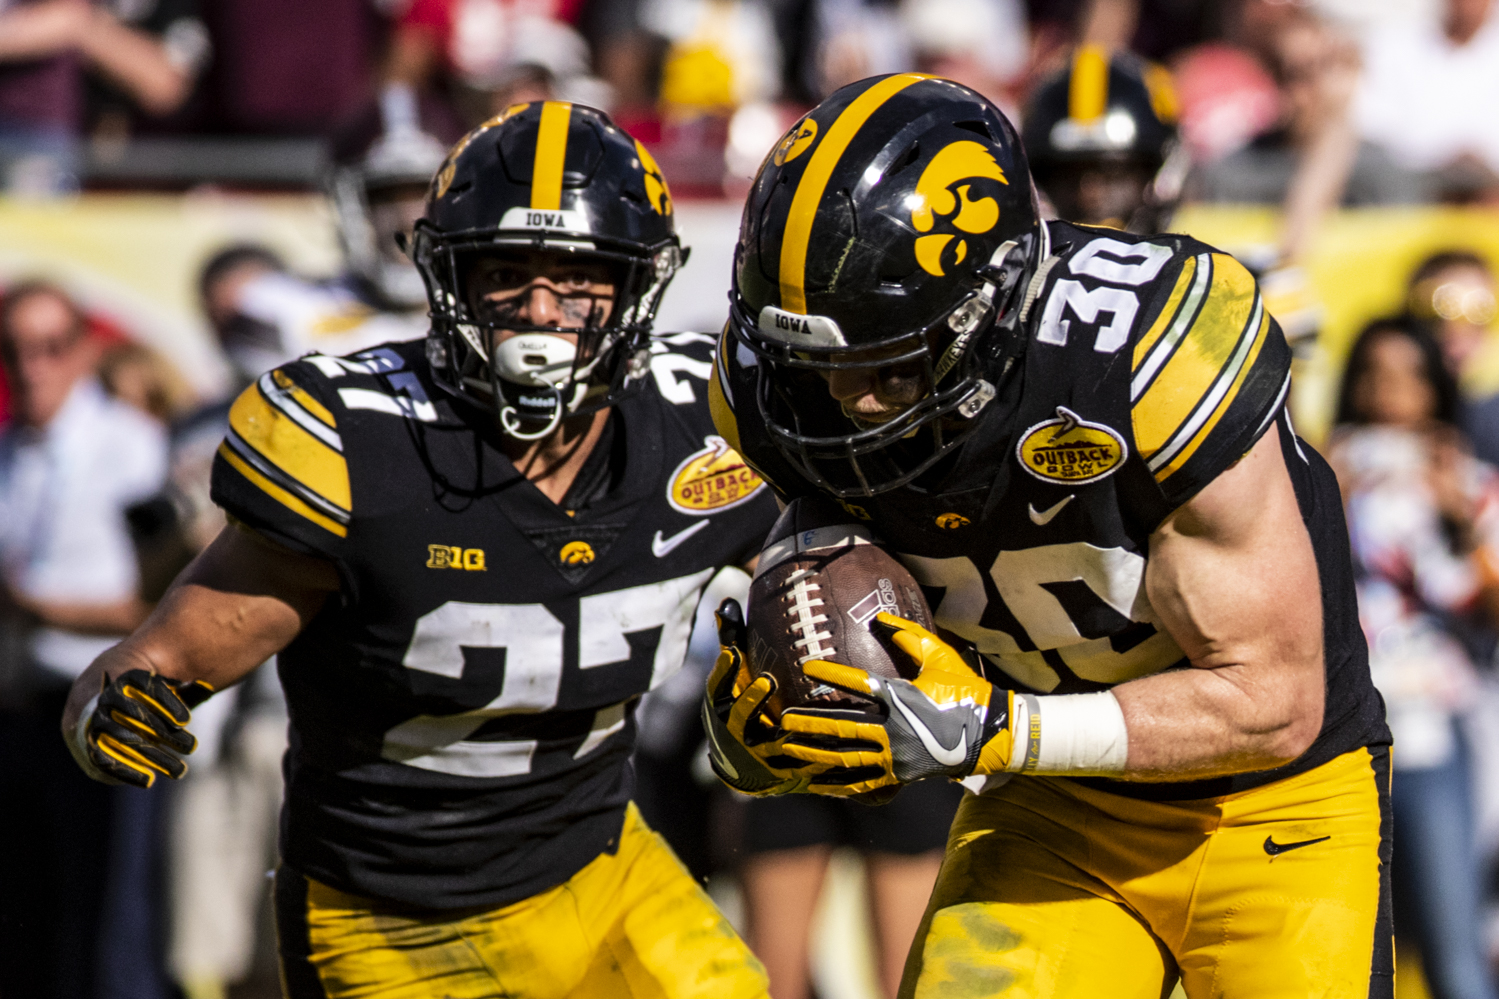 Iowa safety Jake Gervase intercepts a pass in the end zone during the Outback Bowl game between Iowa and Mississippi State at Raymond James Stadium in Tampa, Florida on Tuesday, January 1, 2019. The Hawkeyes defeated the Bulldogs 27-22.